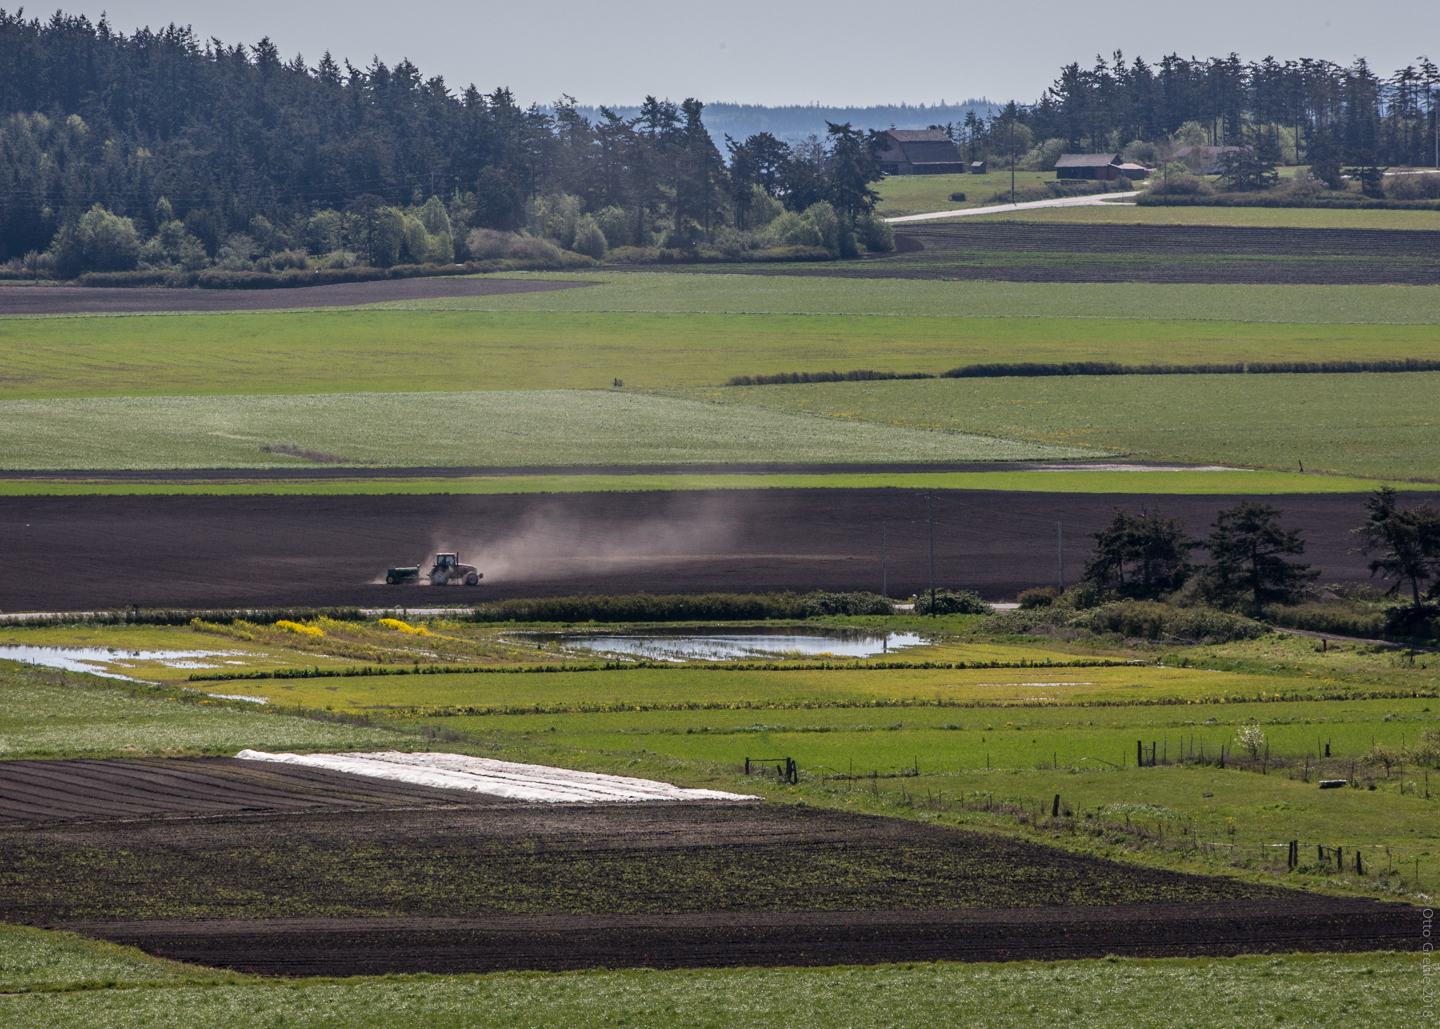 Farming Ebey's Prarie, Whidbey Island.